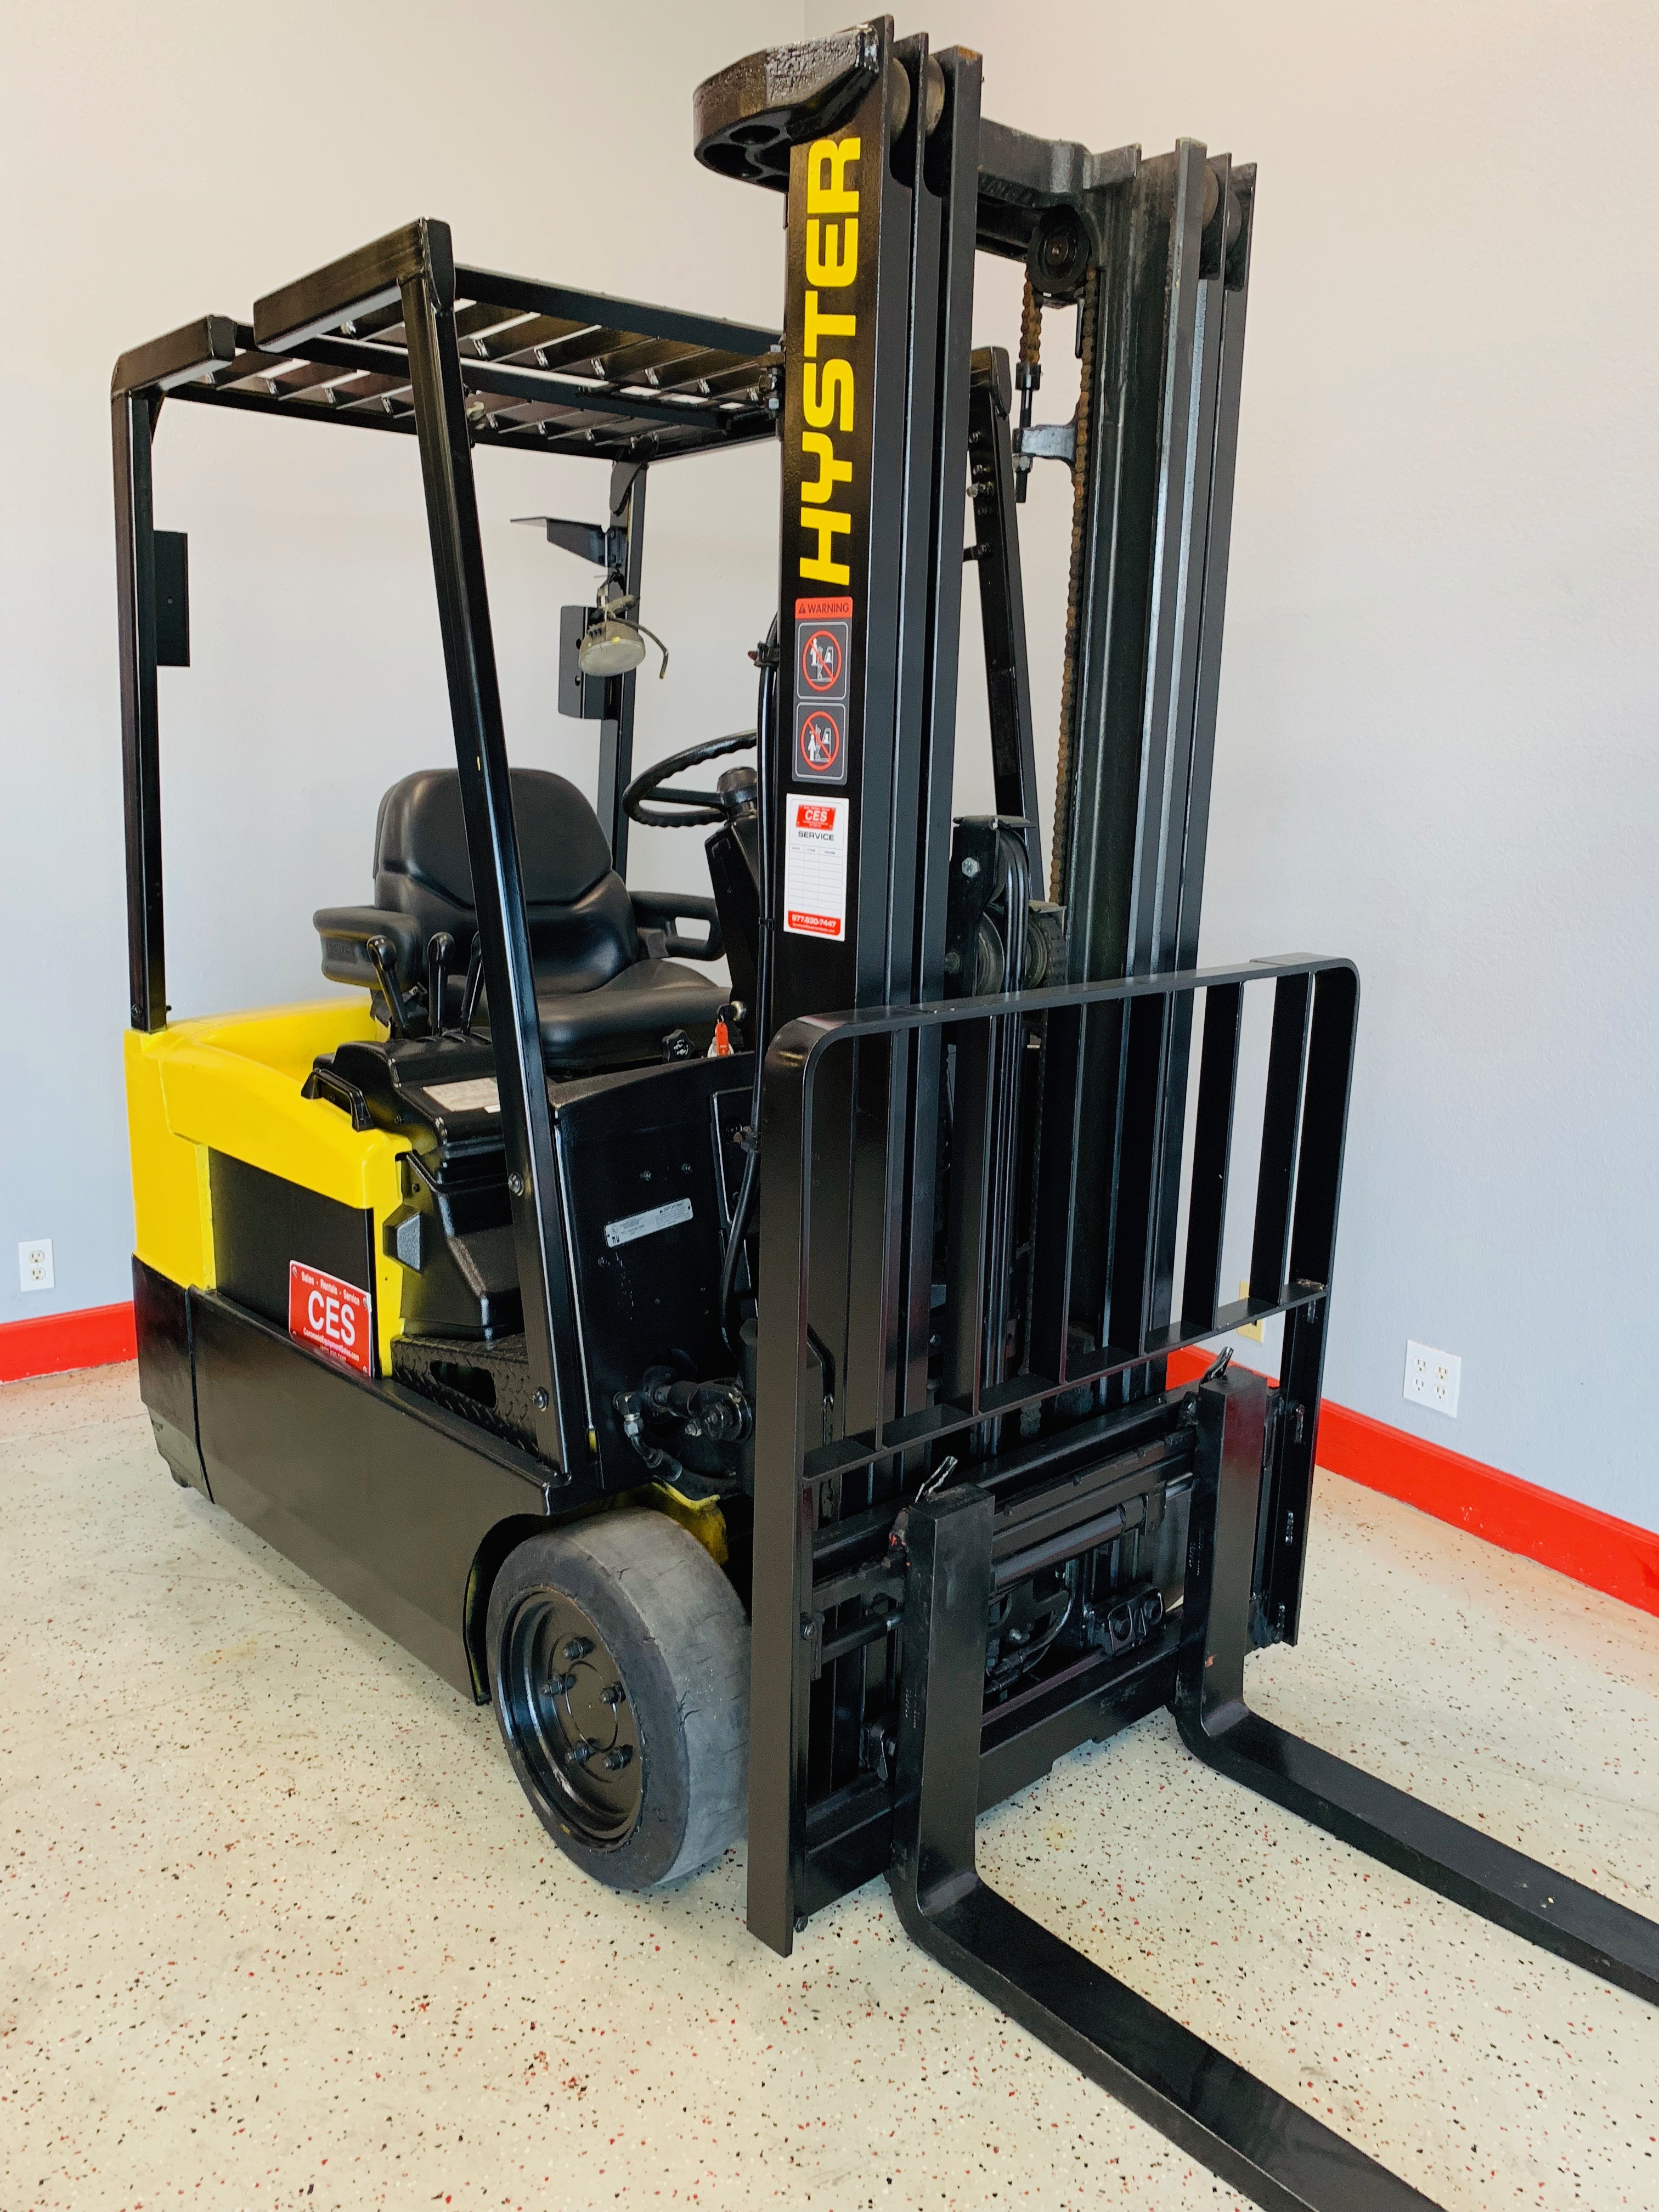 Ces 20801 Hyster J30xmt2 3 Wheeler Electric Forklift